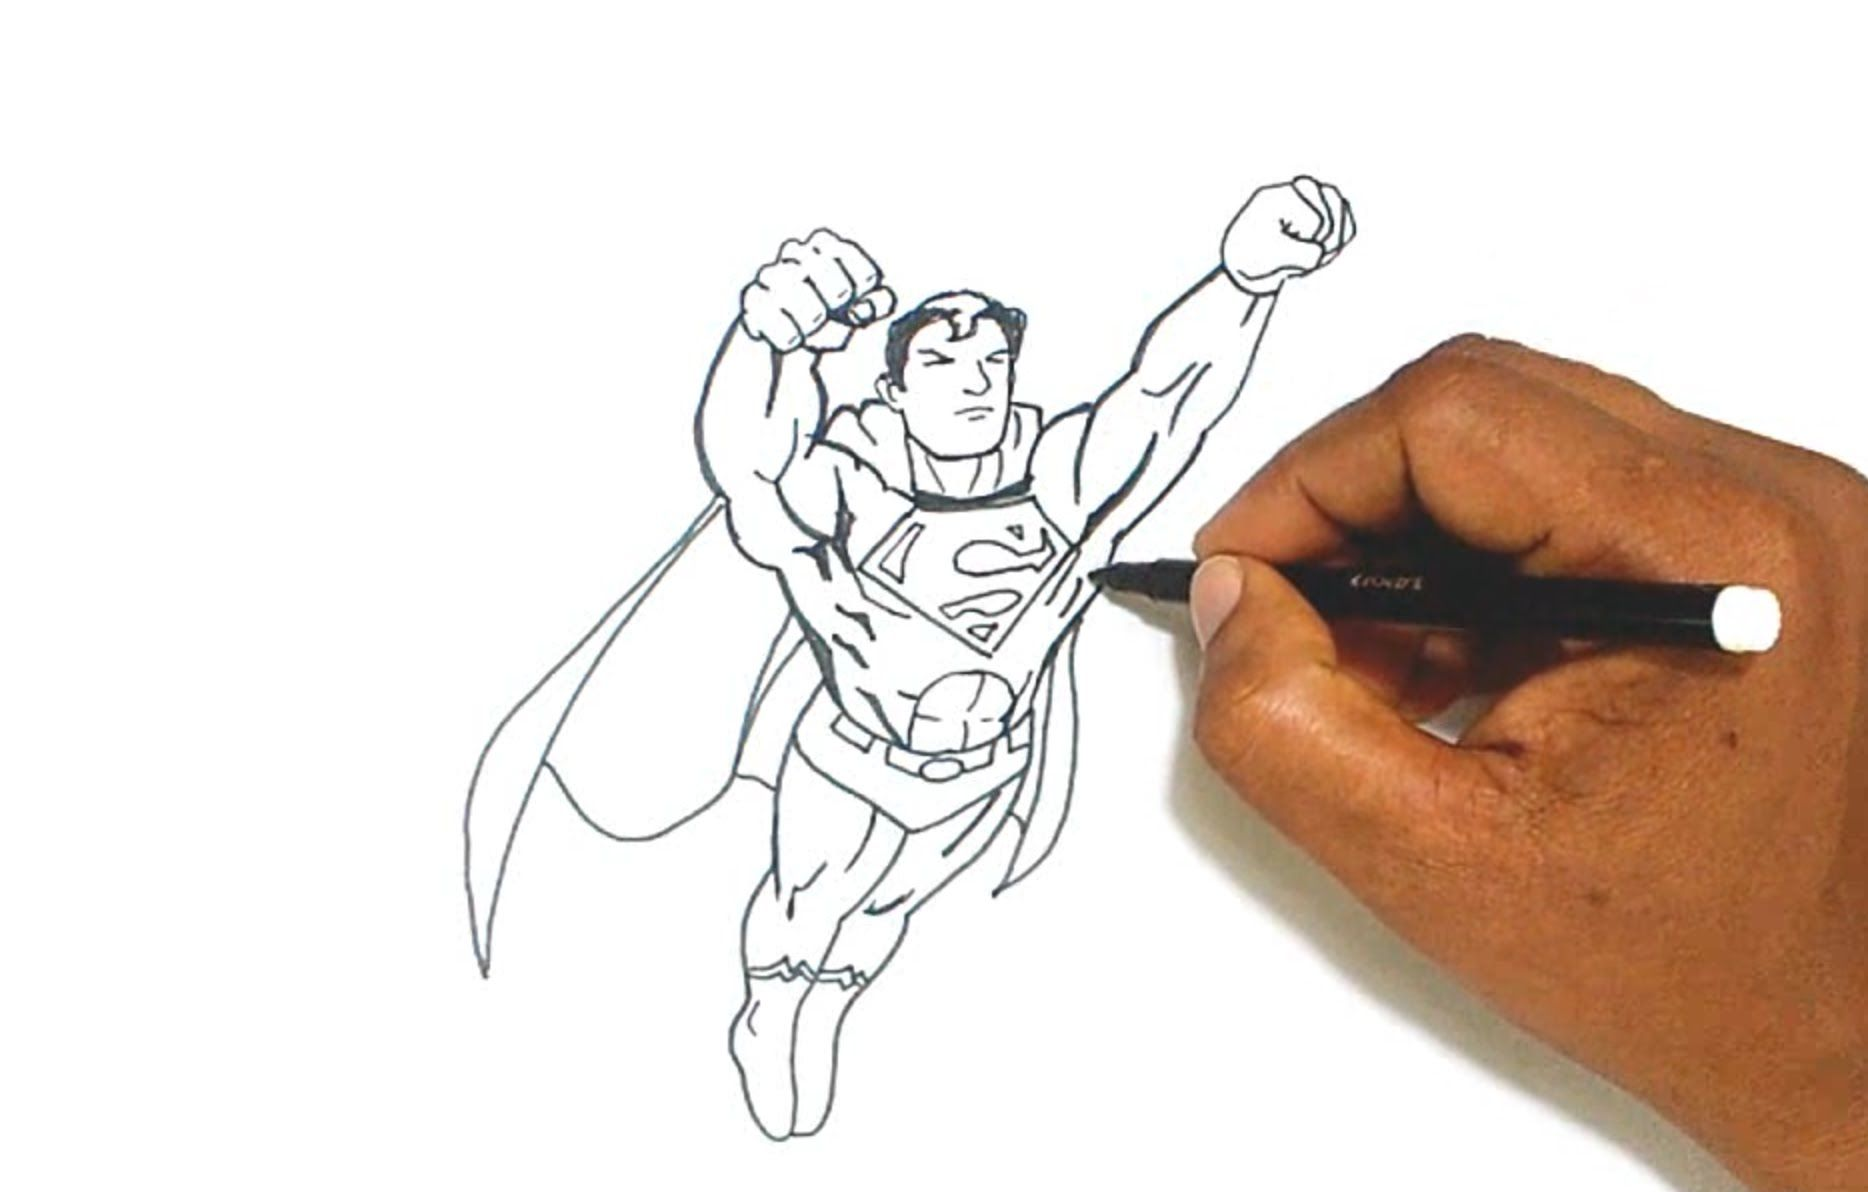 Line Art Photo Tutorial : Superman drawing tutorial at getdrawings.com free for personal use